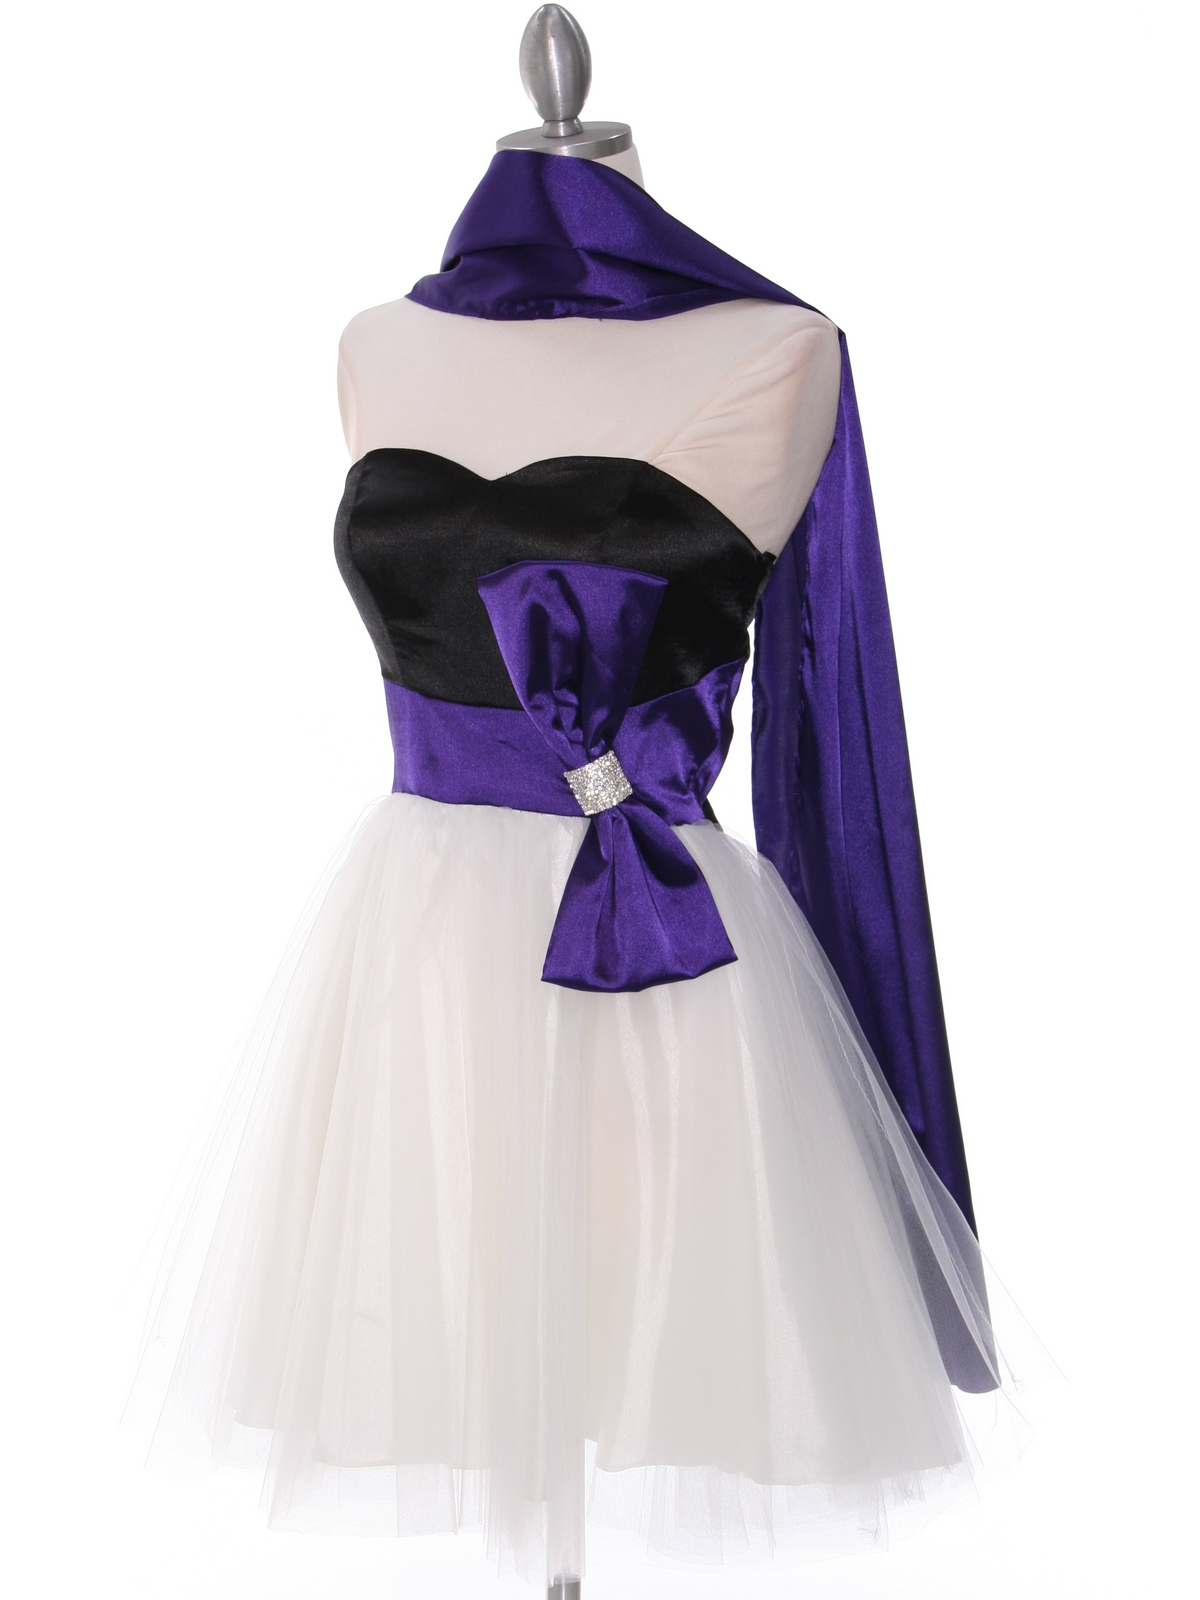 blackpurple homecoming dress with bow sung boutique la